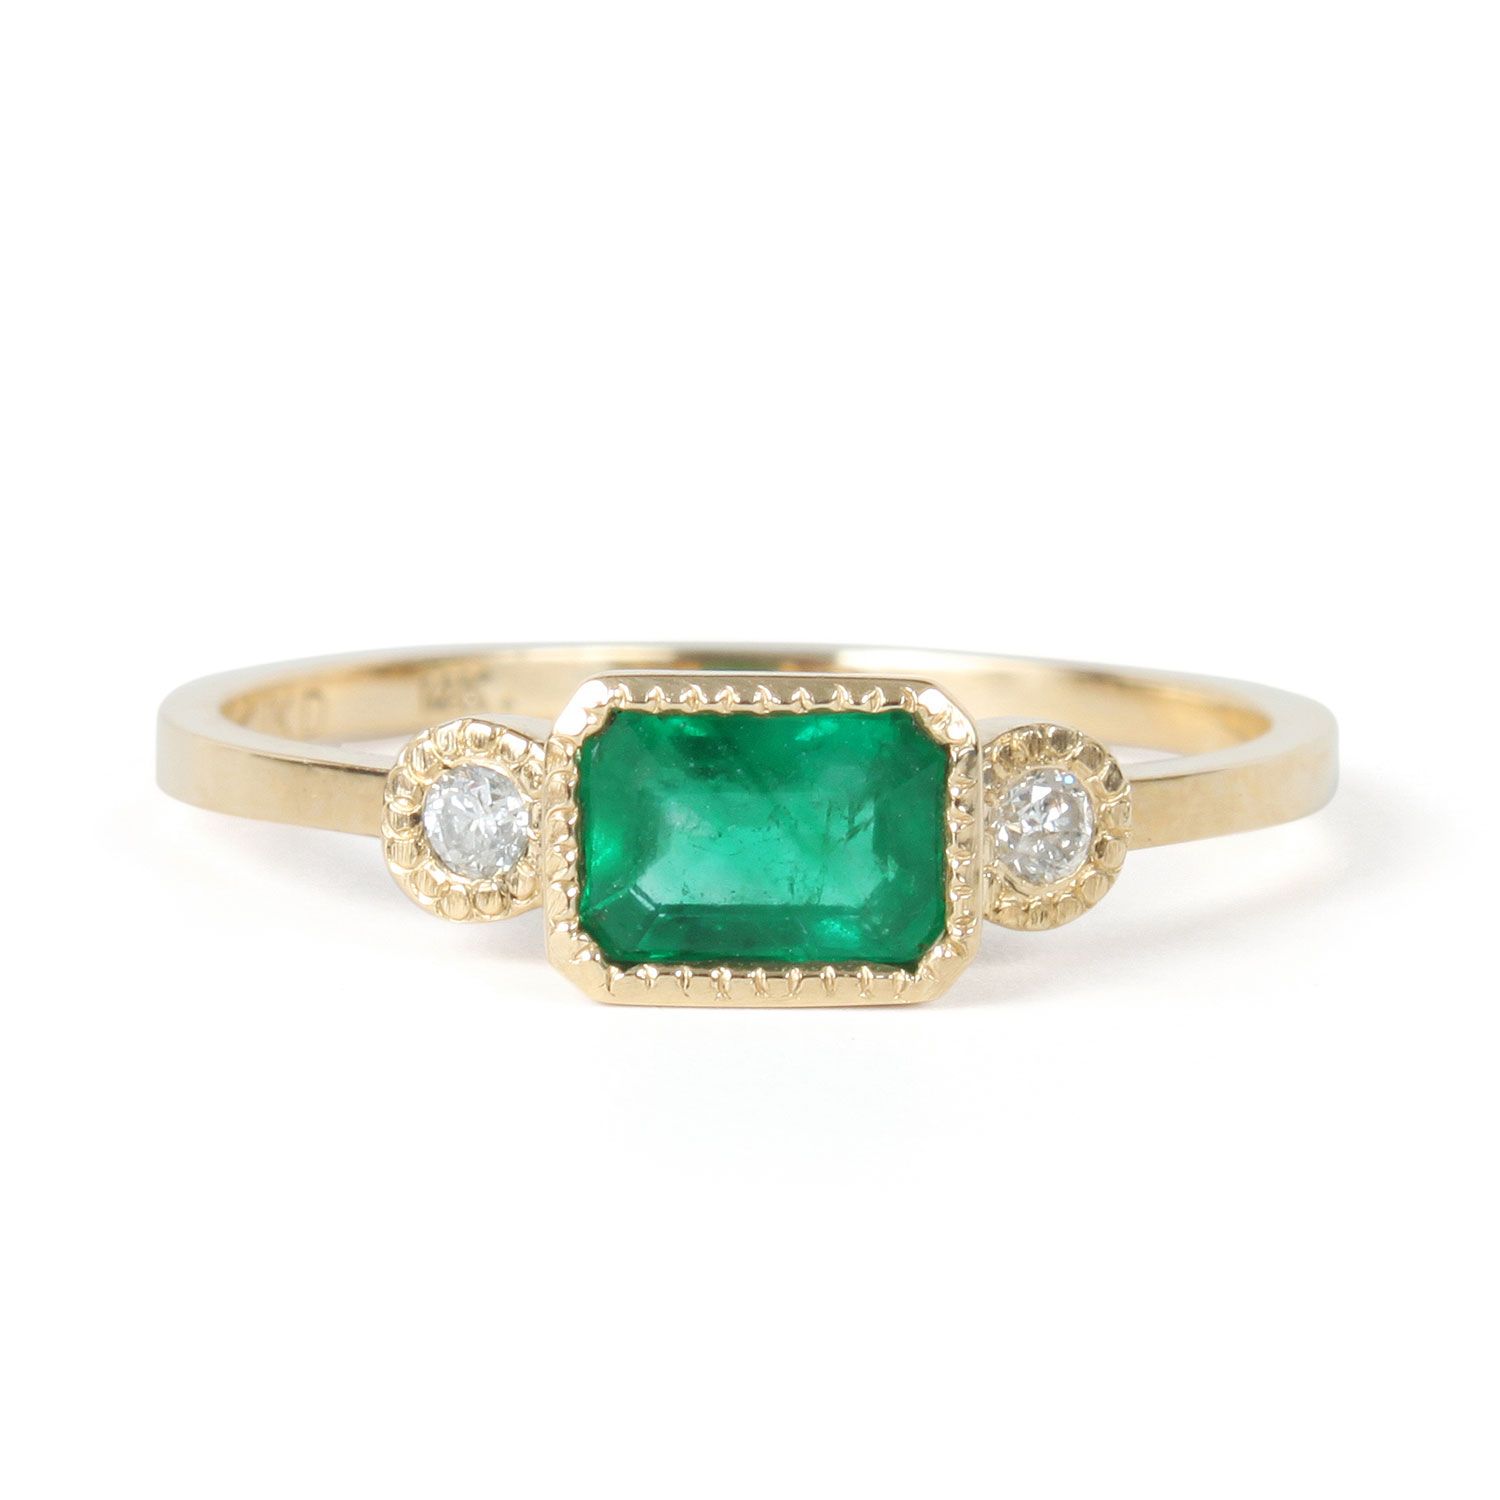 engagement gemstone jewellery beautiful wedding green hbz unique fashion rings bridal emerald